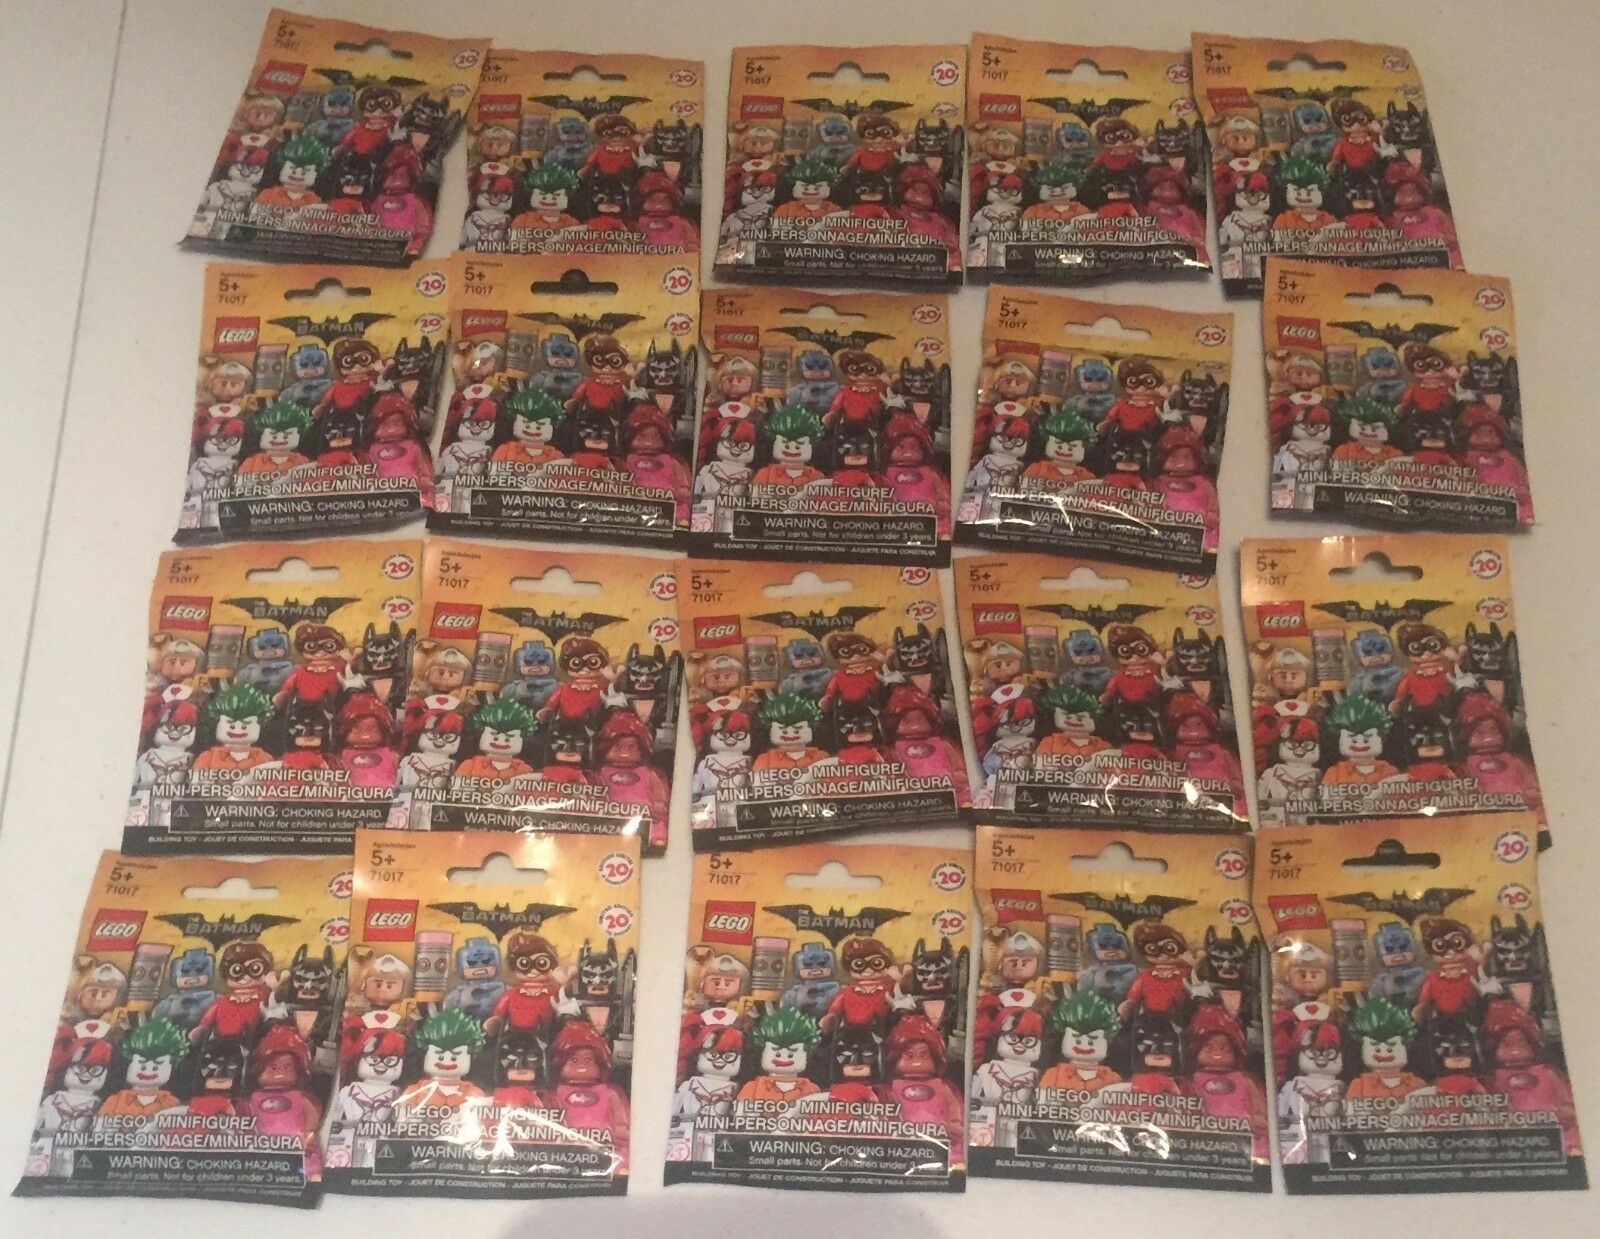 LEGO The Batman Movie Collectable Minifigures 71017 Complete Set Unopened